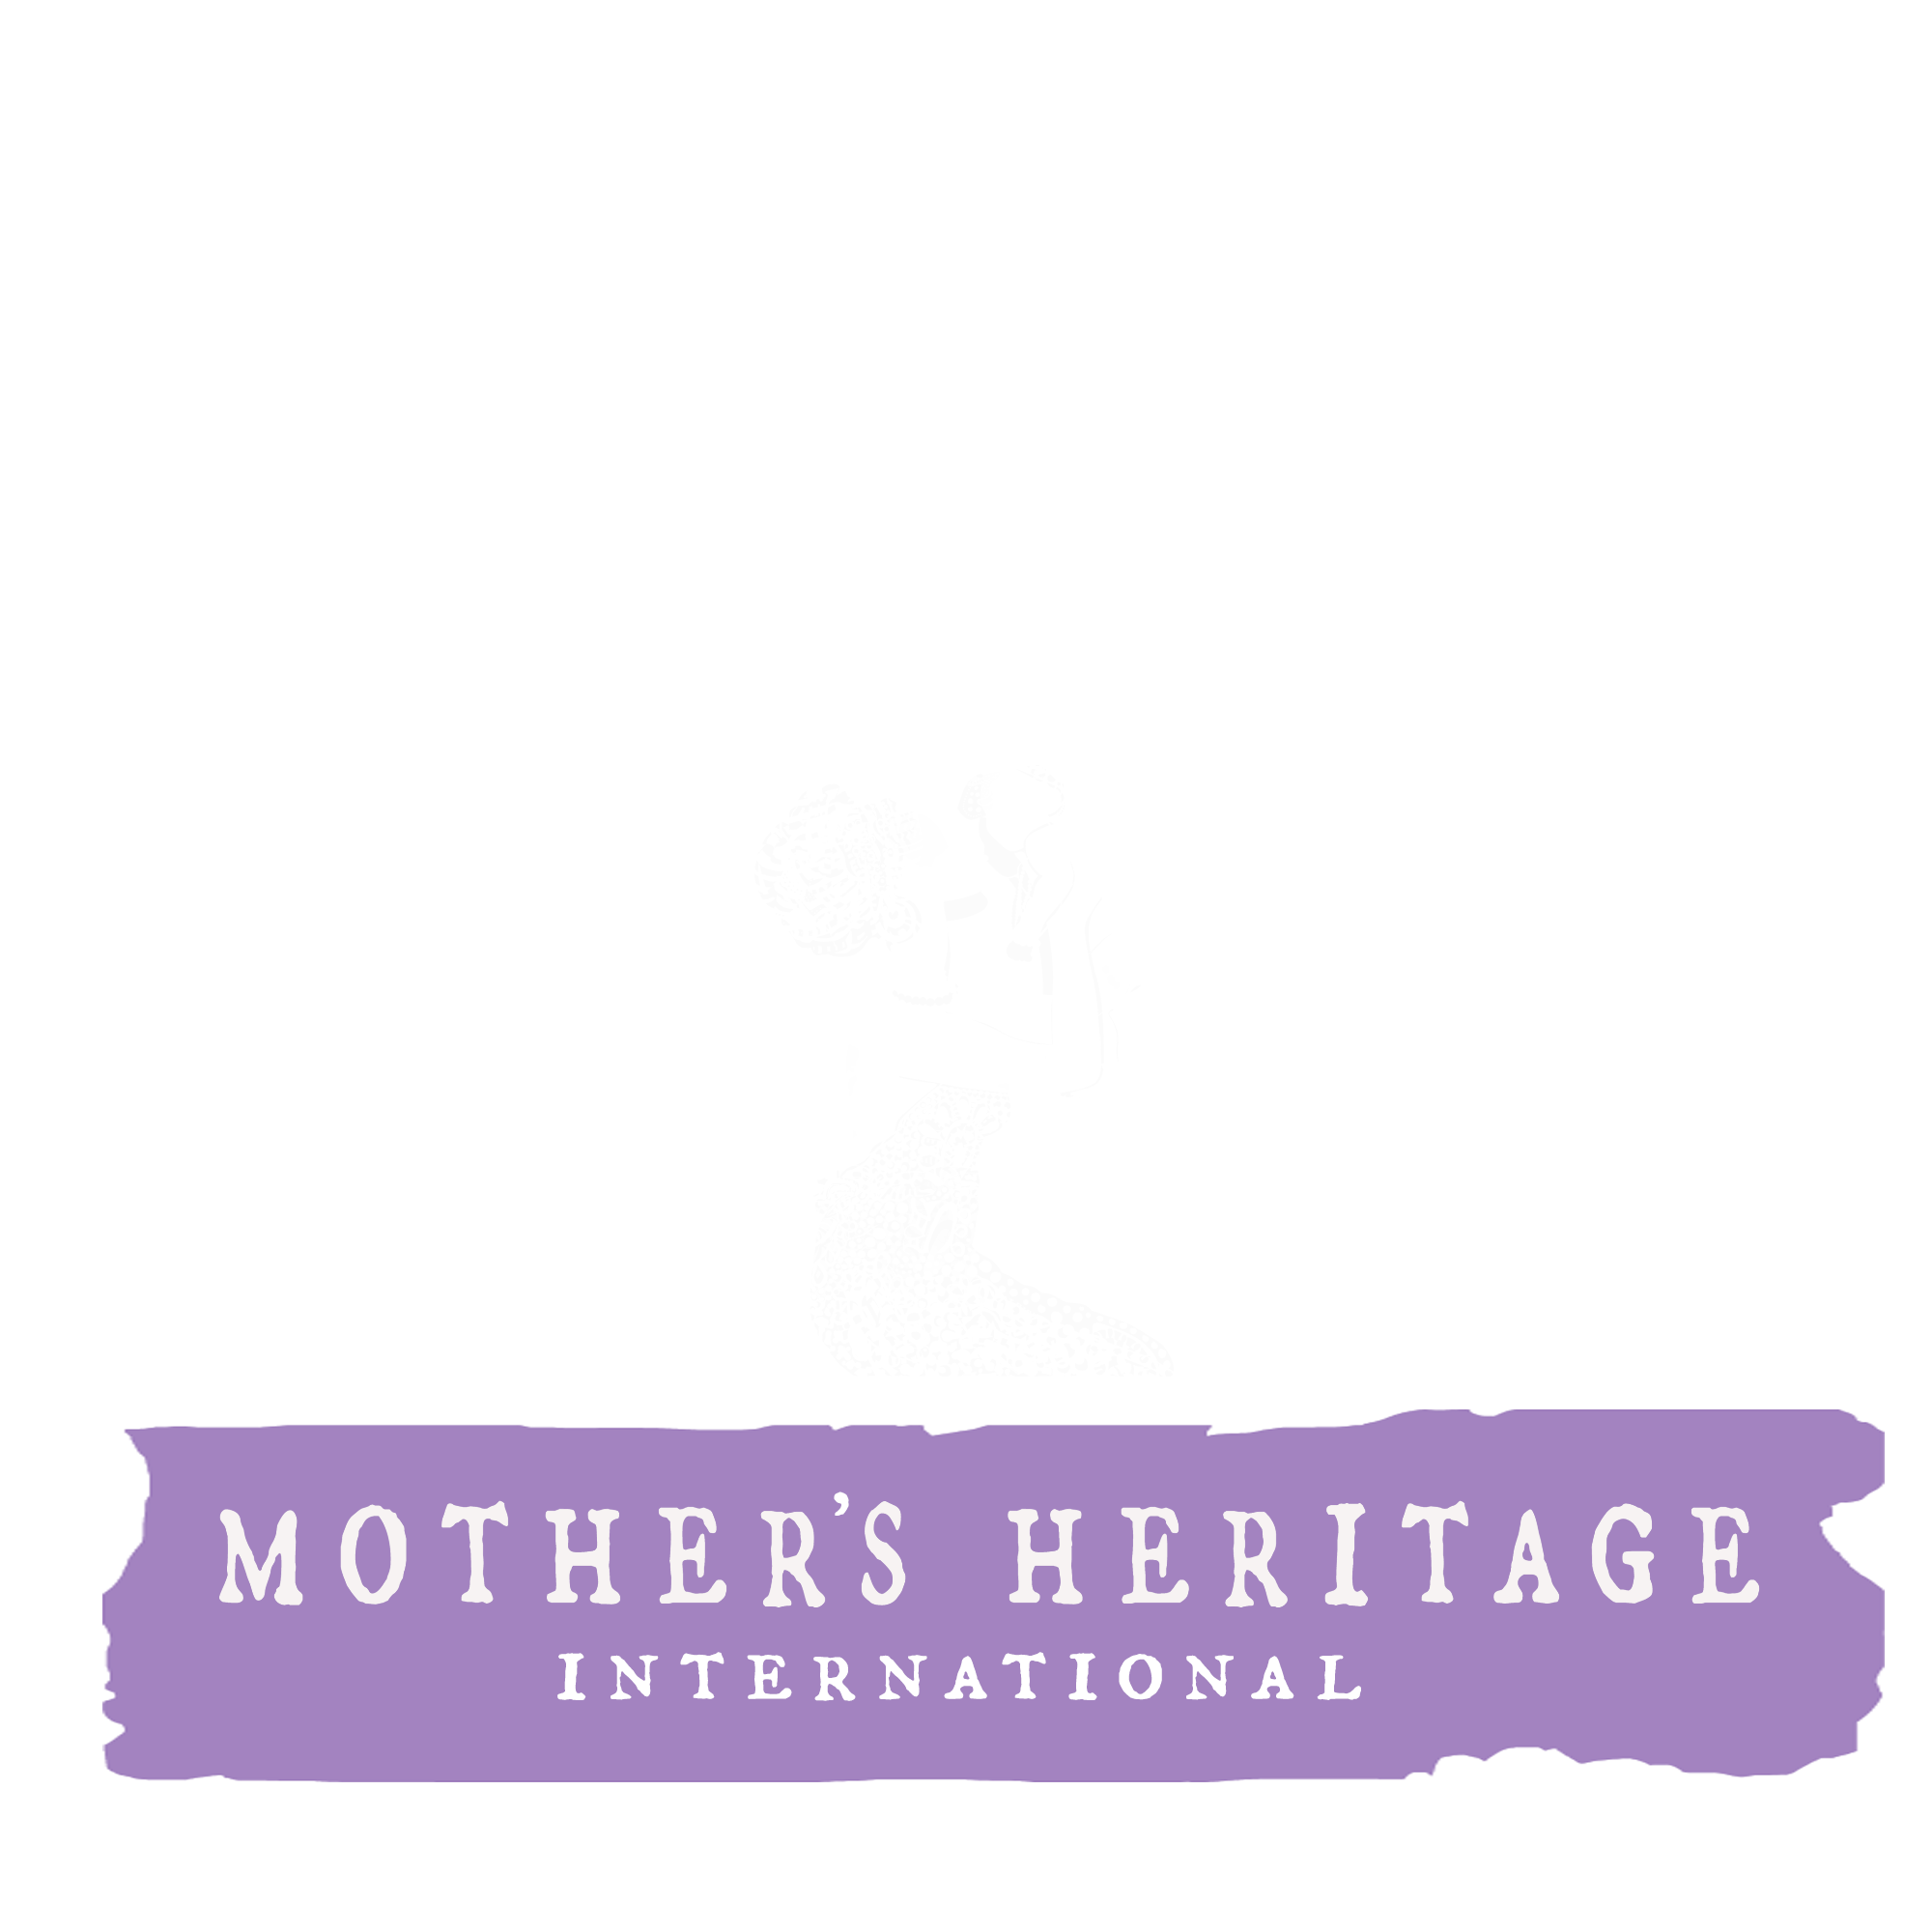 MOTHER'S HERITAGE INTERNATIONAL Retina Logo